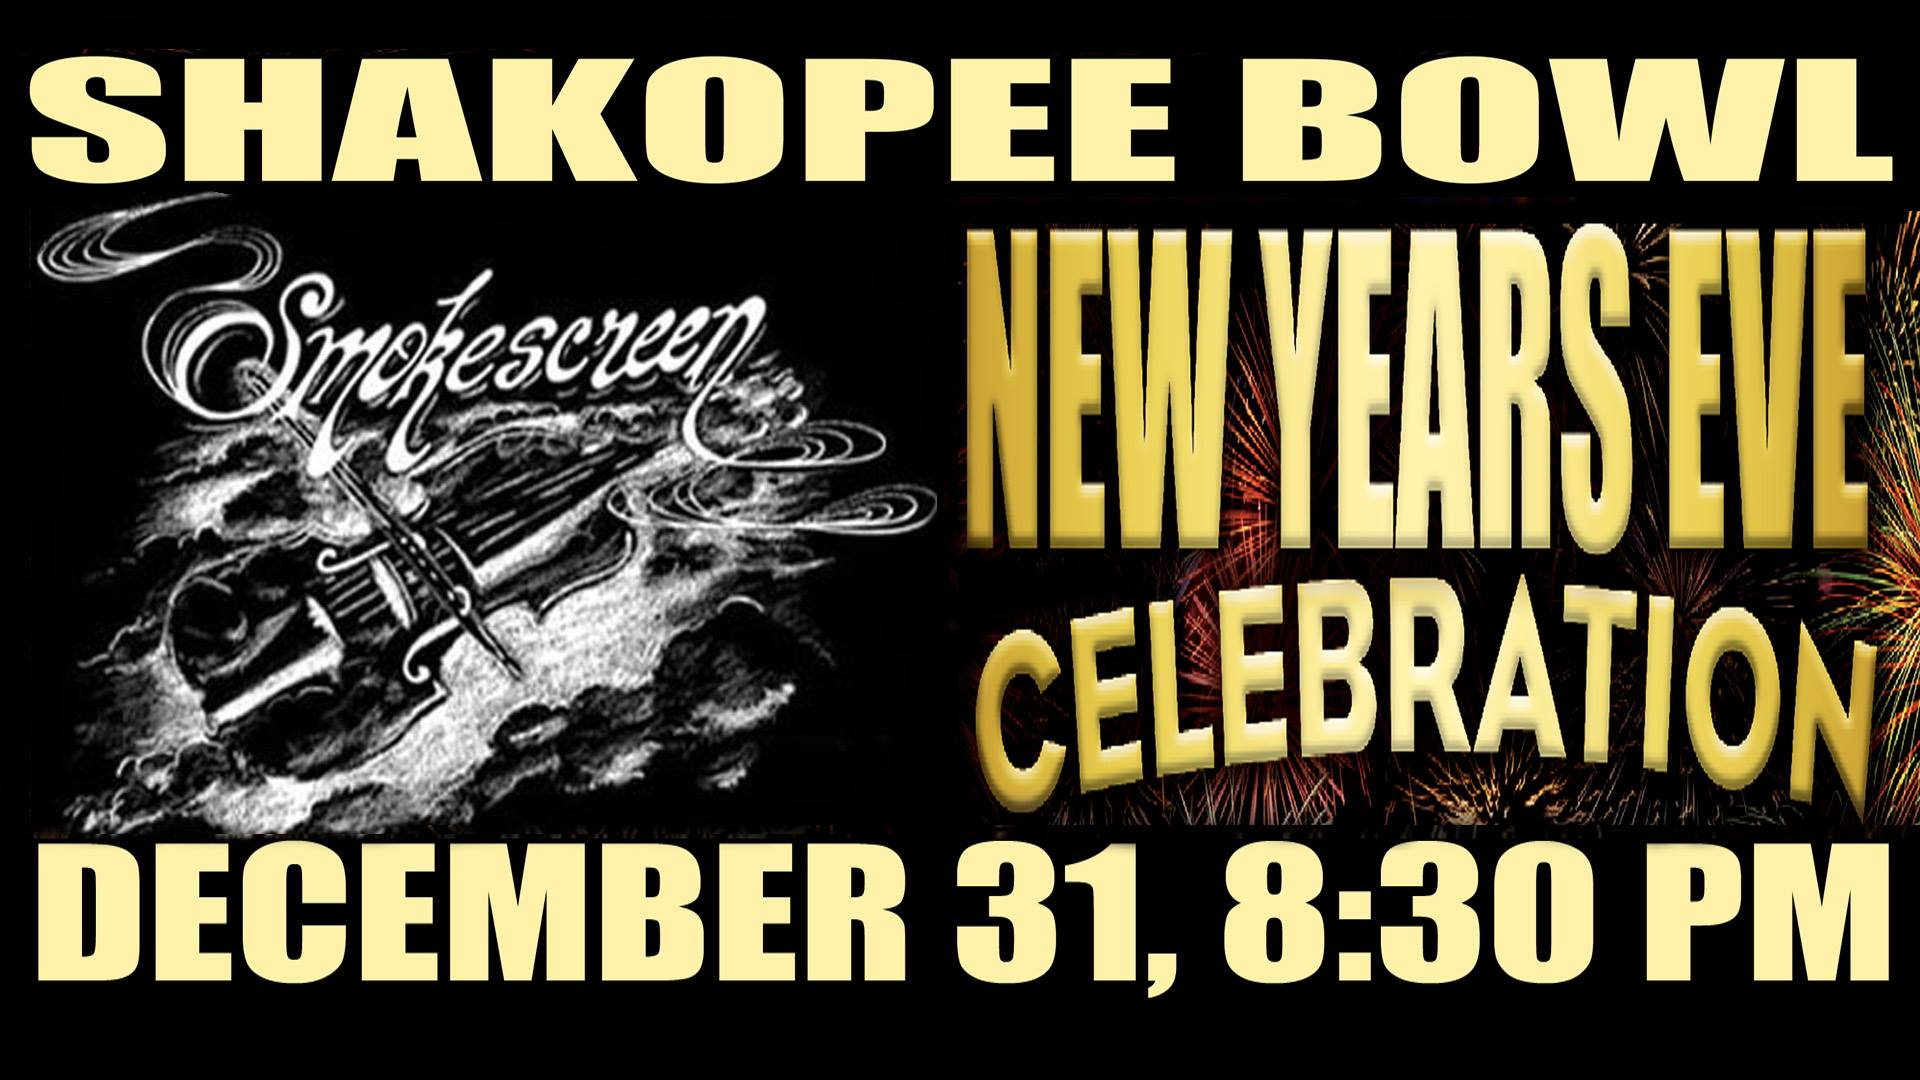 New Years Eve at Shakopee Bowl